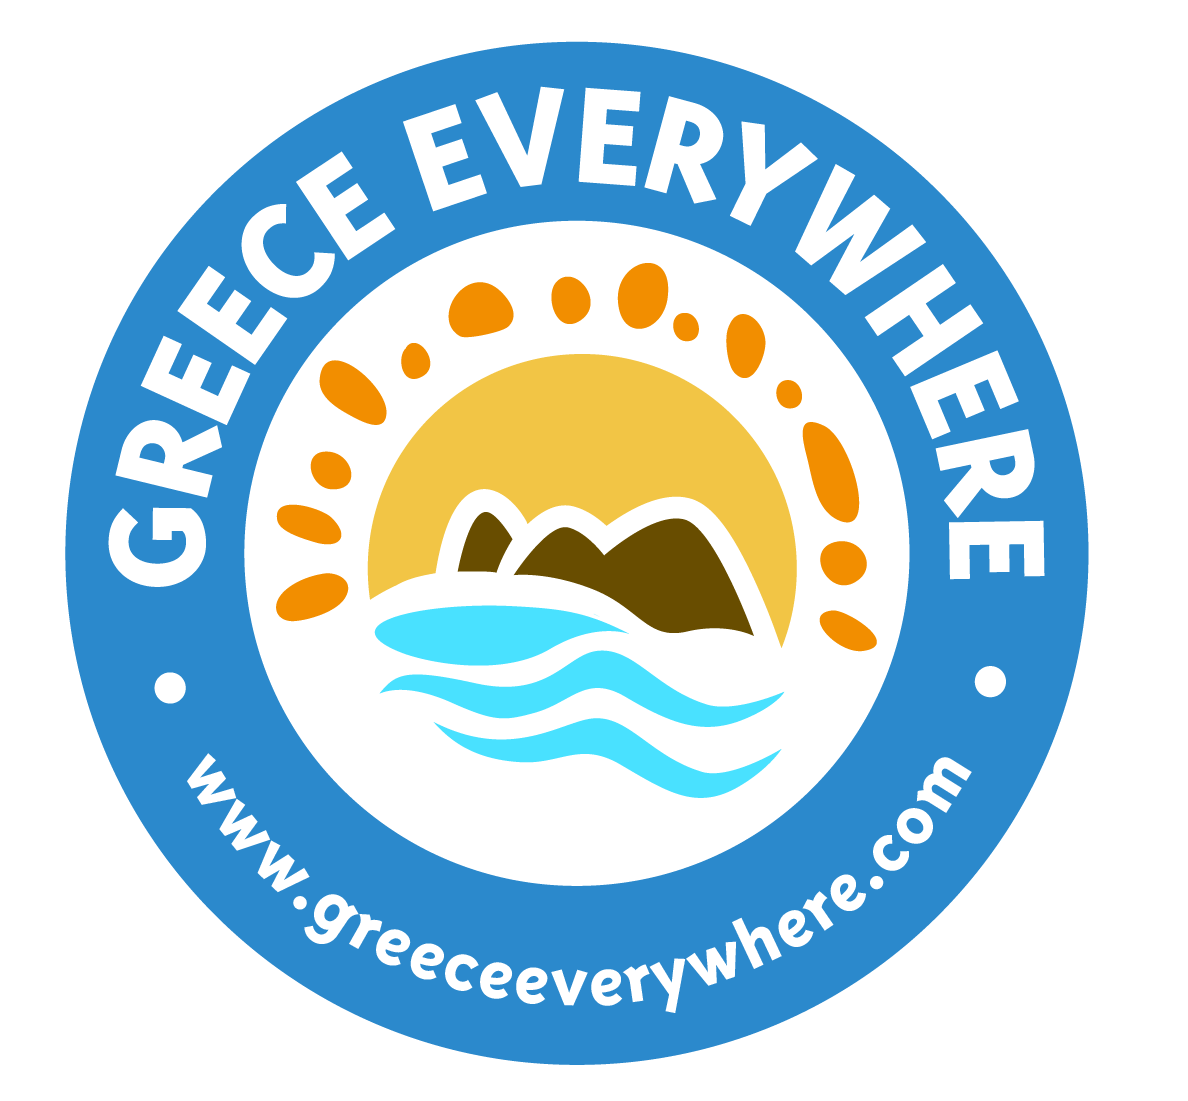 Greece Everywhere: An Initiative Aiming to Bring Americans Closer to Greek Culture